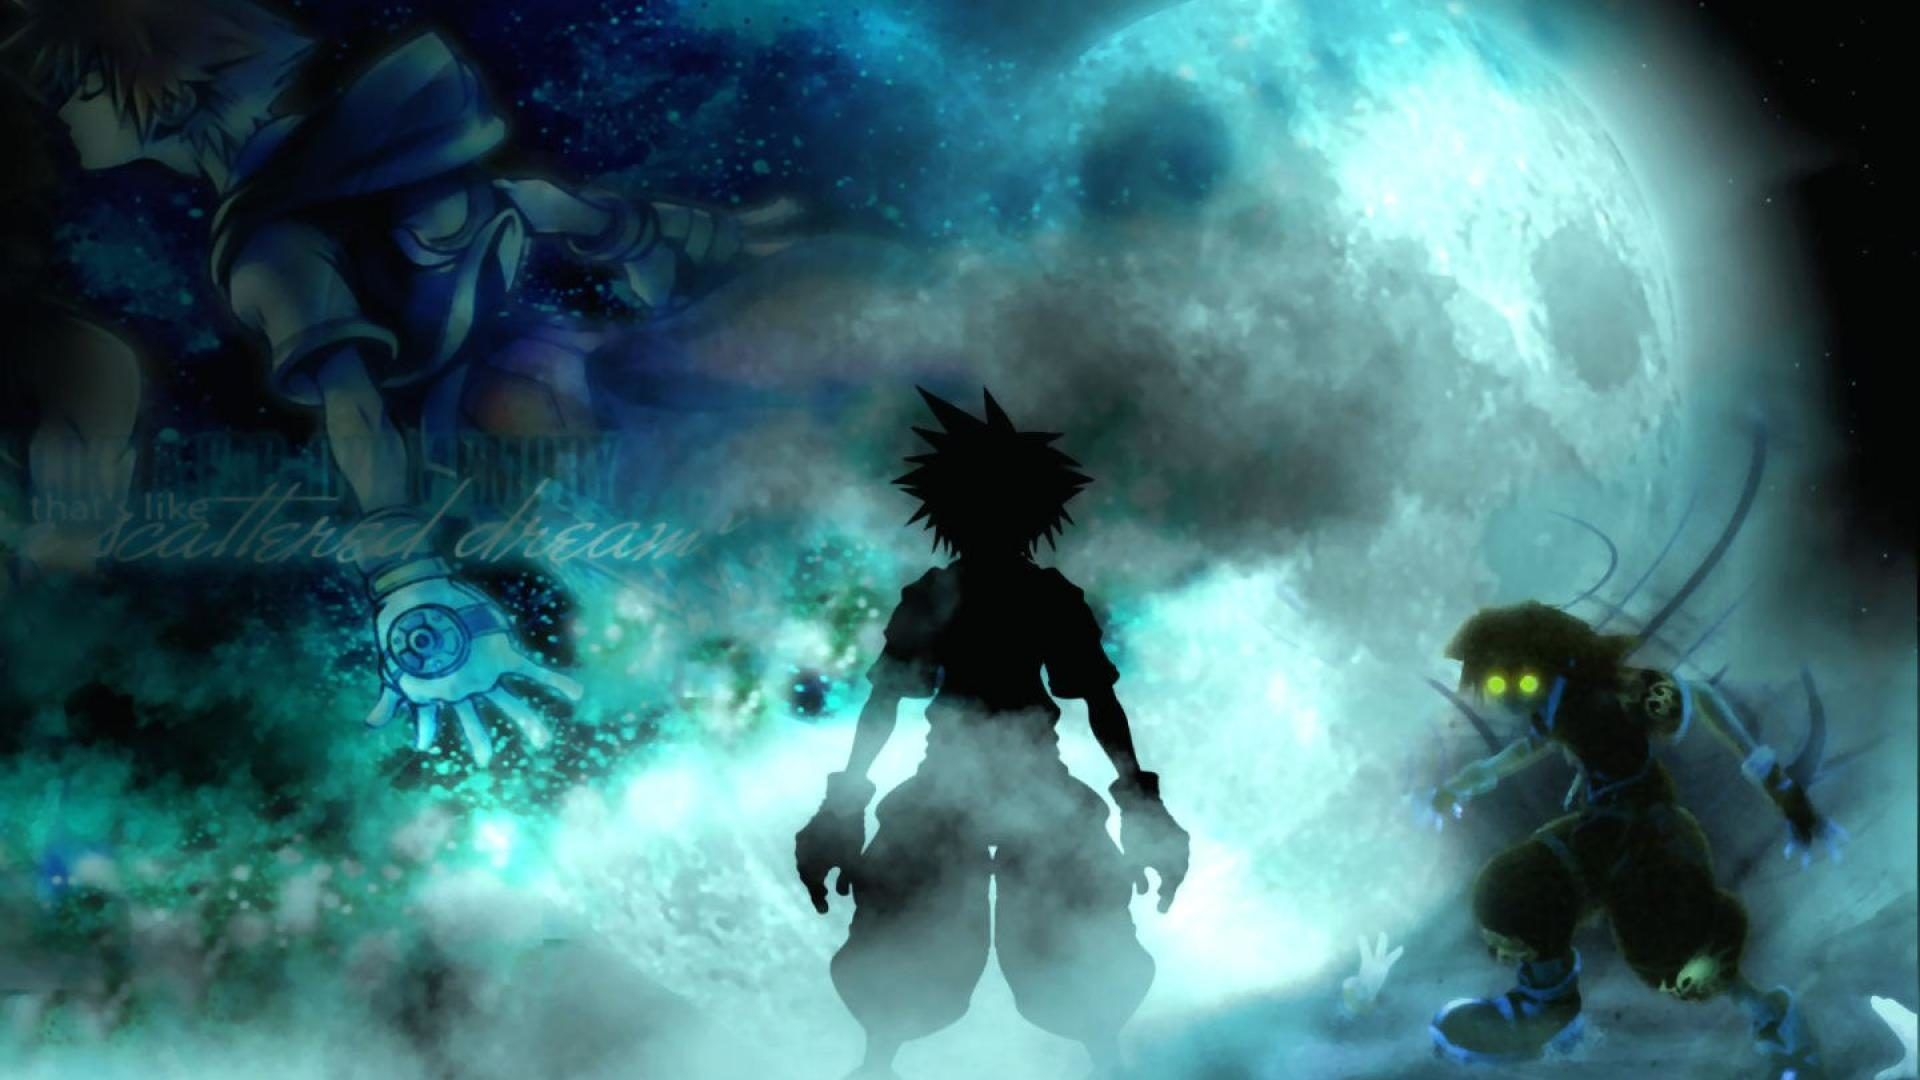 Kingdom Hearts Wallpaper Kingdom hearts wallpaper